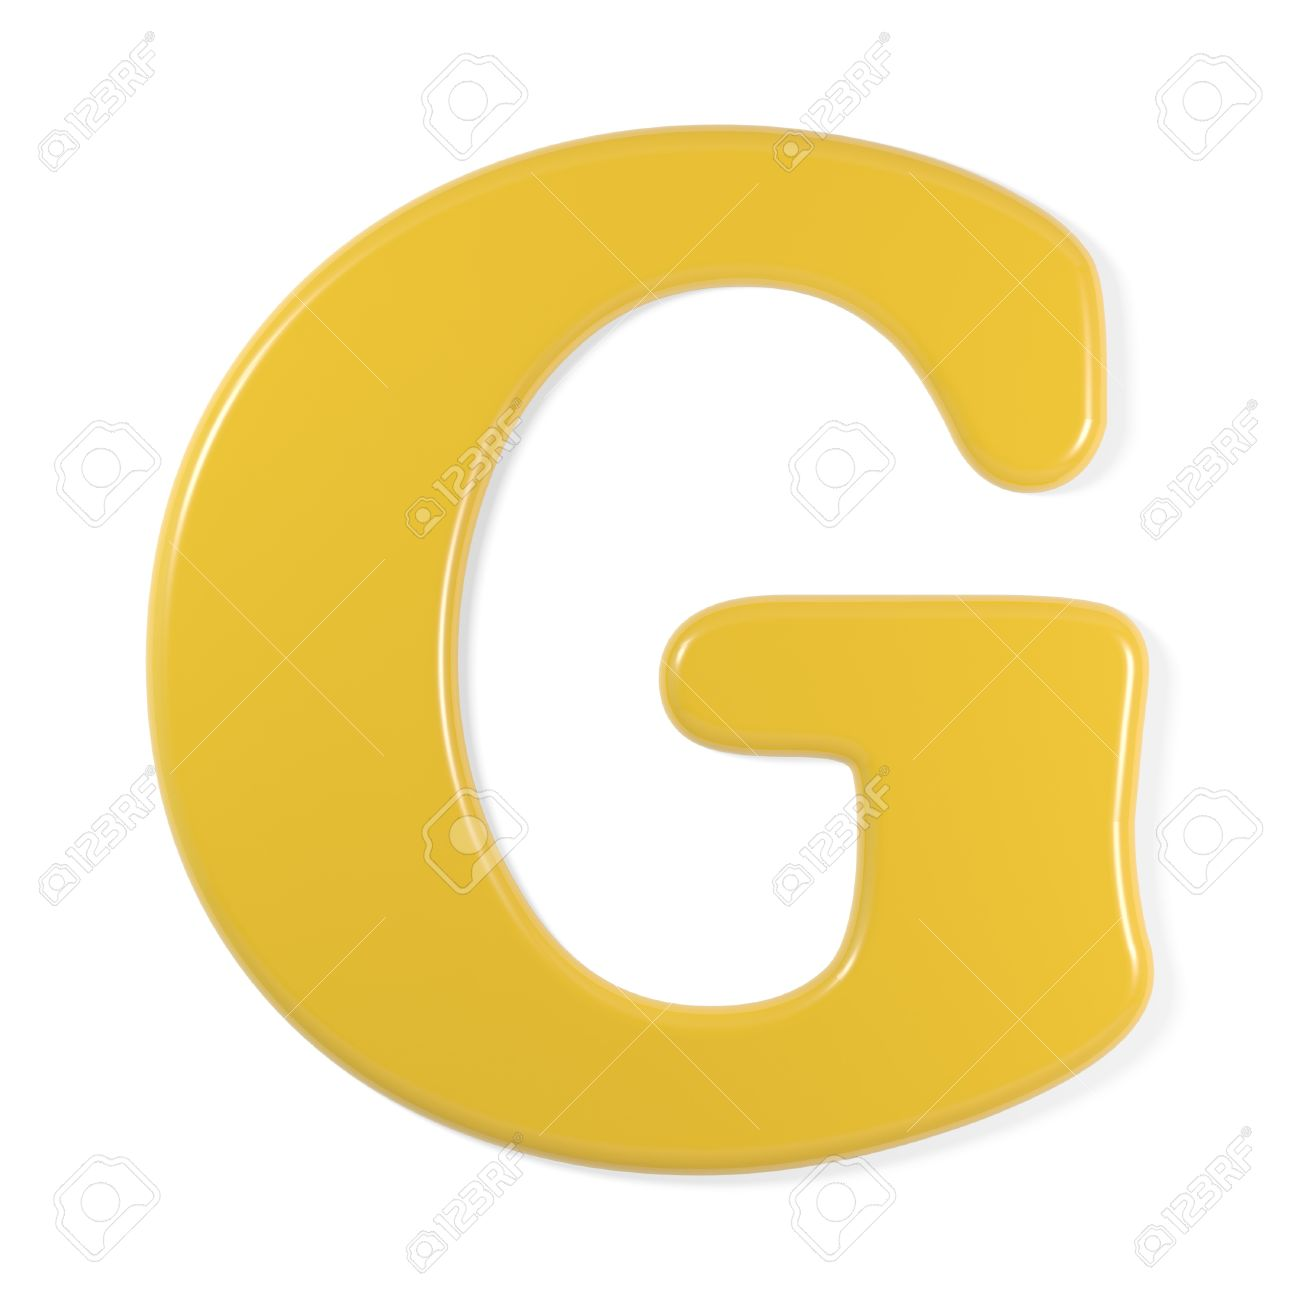 Worksheet Letters G yellow font letter g stock photo picture and royalty free image g